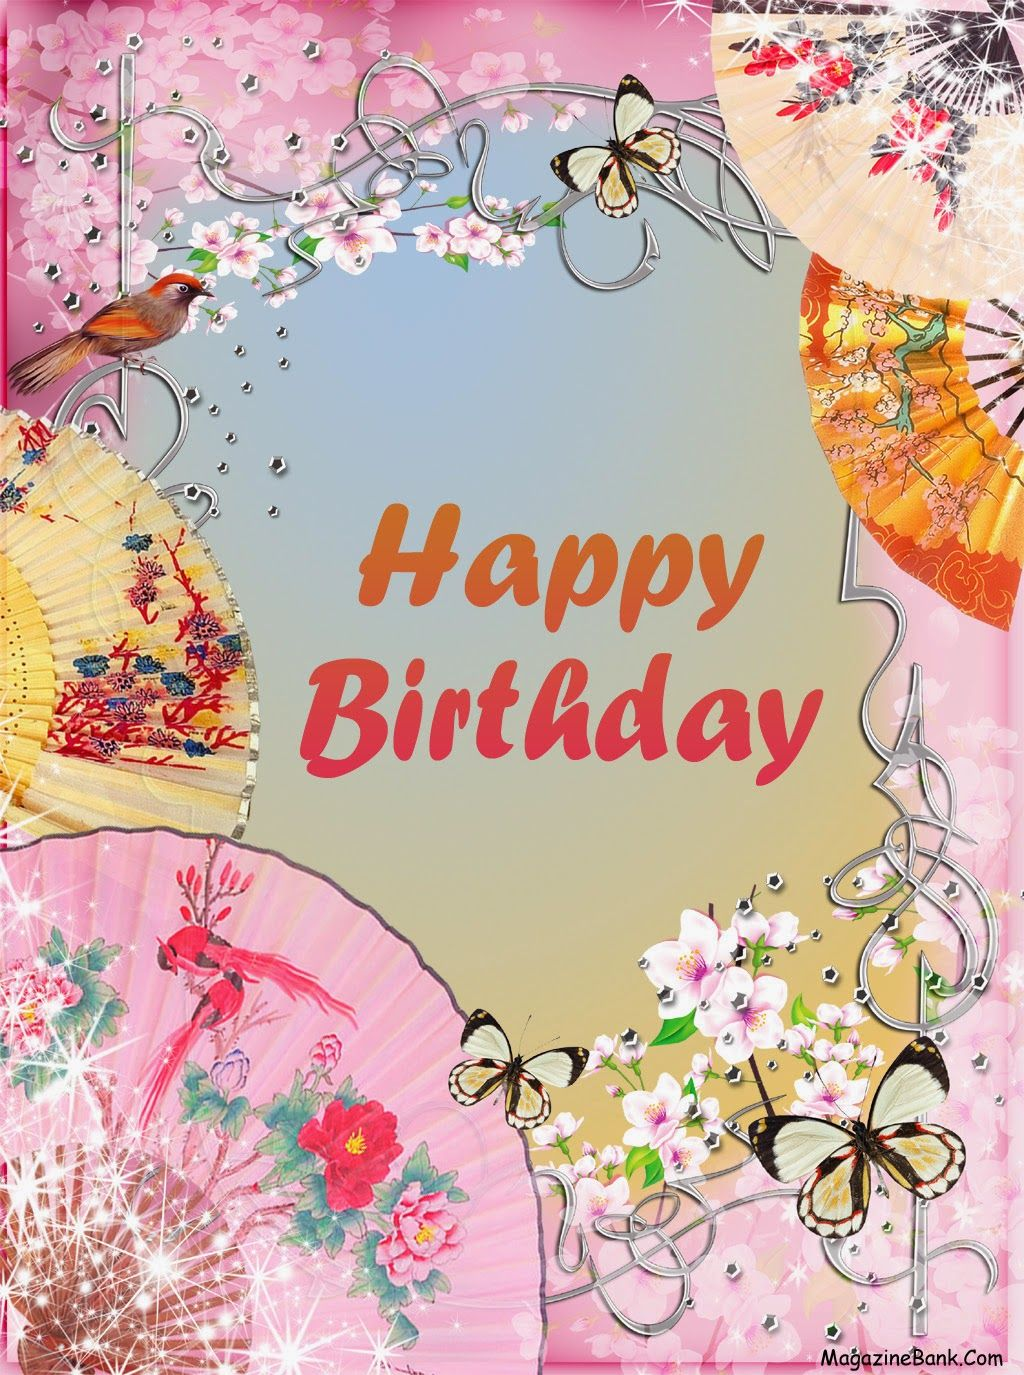 Happy Birthday Wishes Cards And Greeting Cards Birthdays